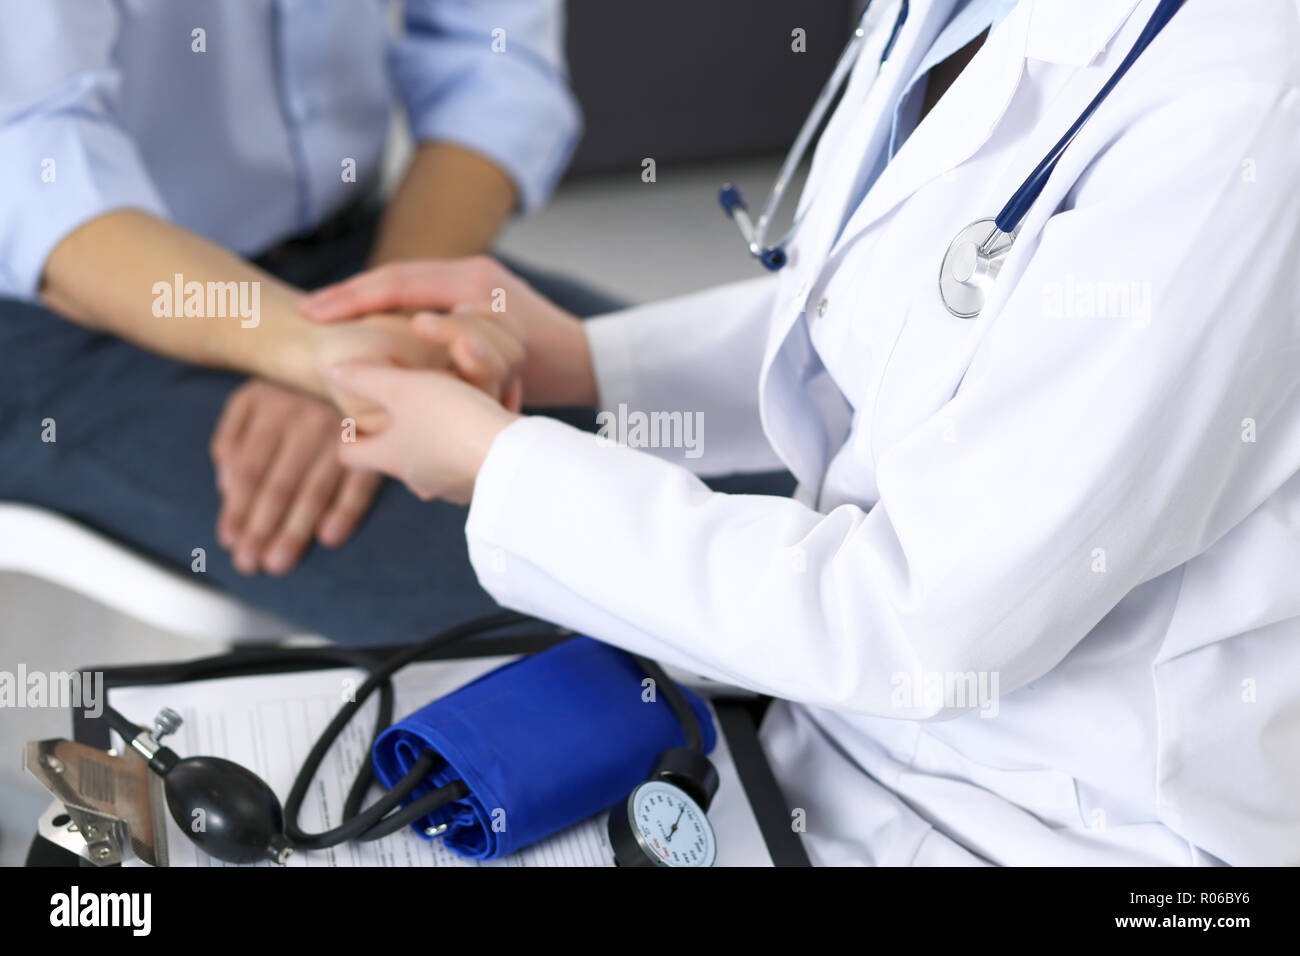 Female doctor checking blood pressure or pulse of the male patient, in hospital. Medicine and healthcare concept - Stock Image